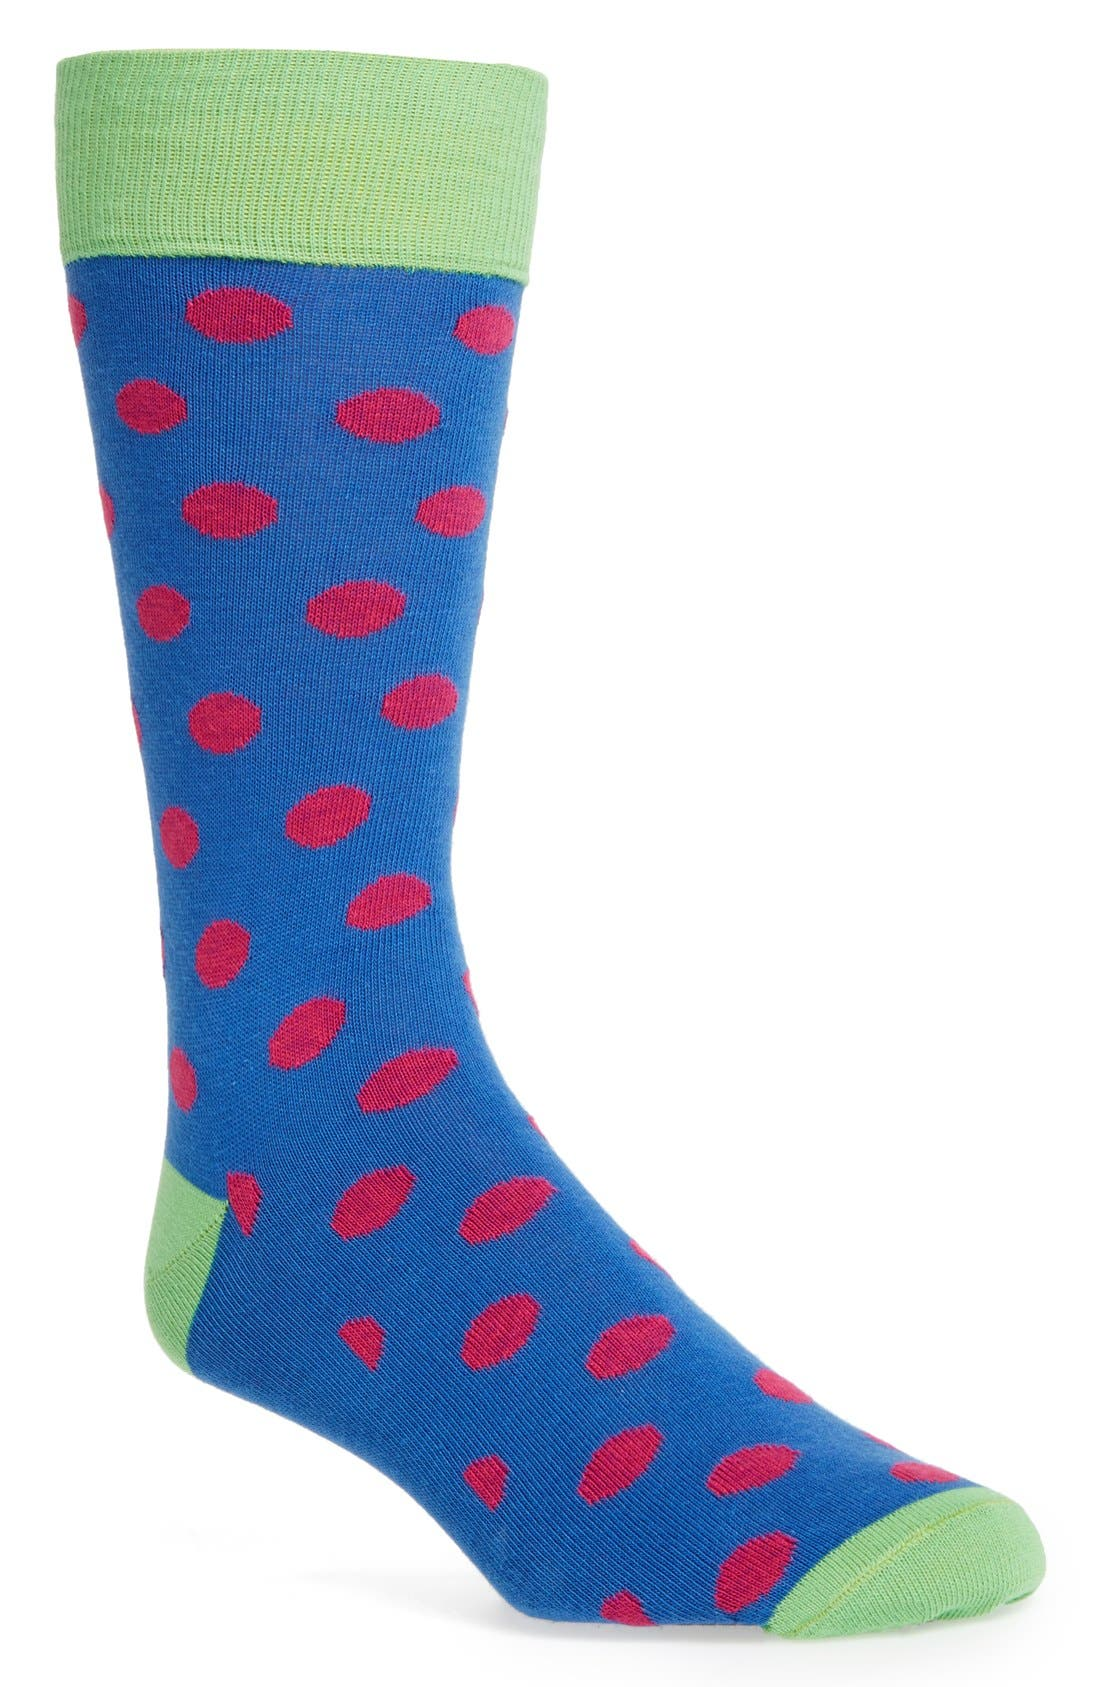 Alternate Image 1 Selected - Lorenzo Uomo Polka Dot Socks (3 for $30)